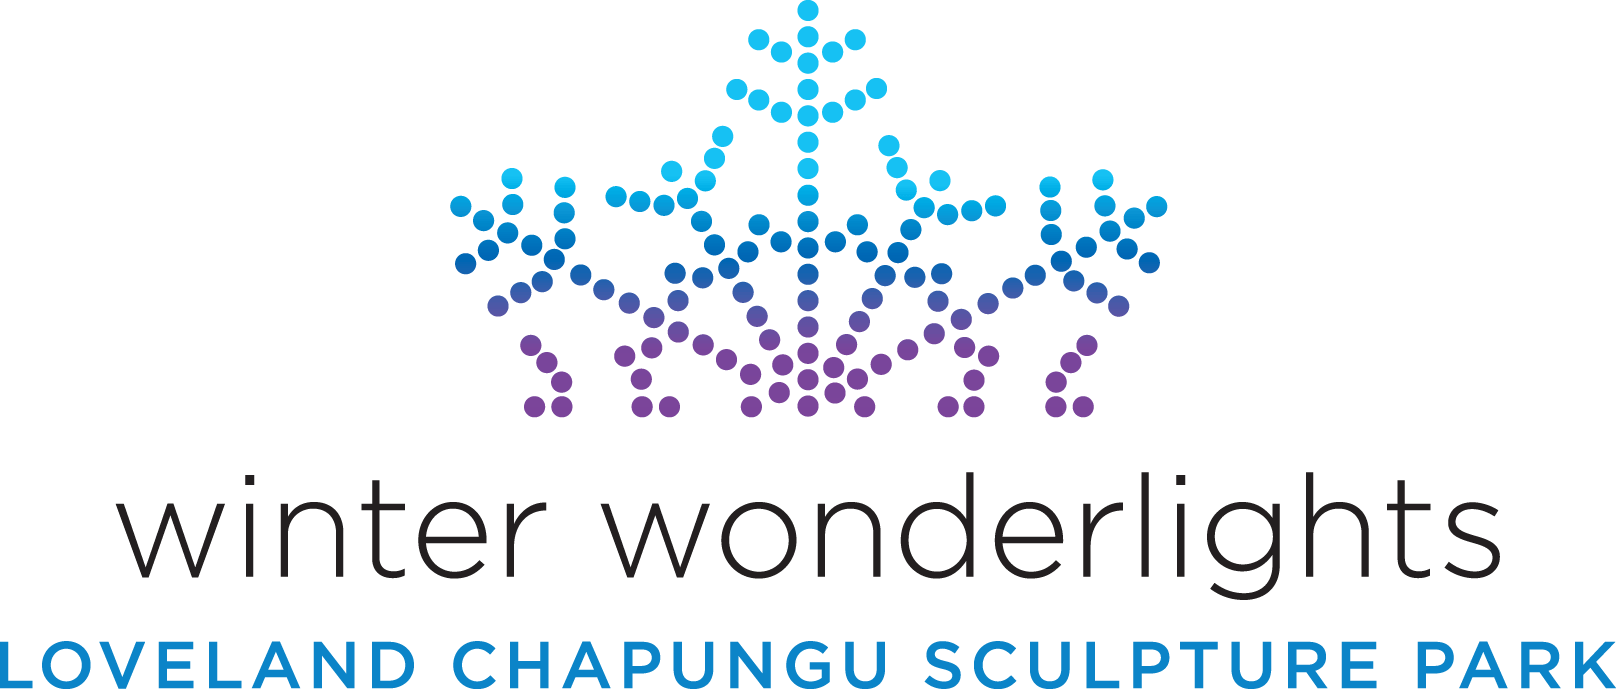 Winter-Wonderlights-logo.png